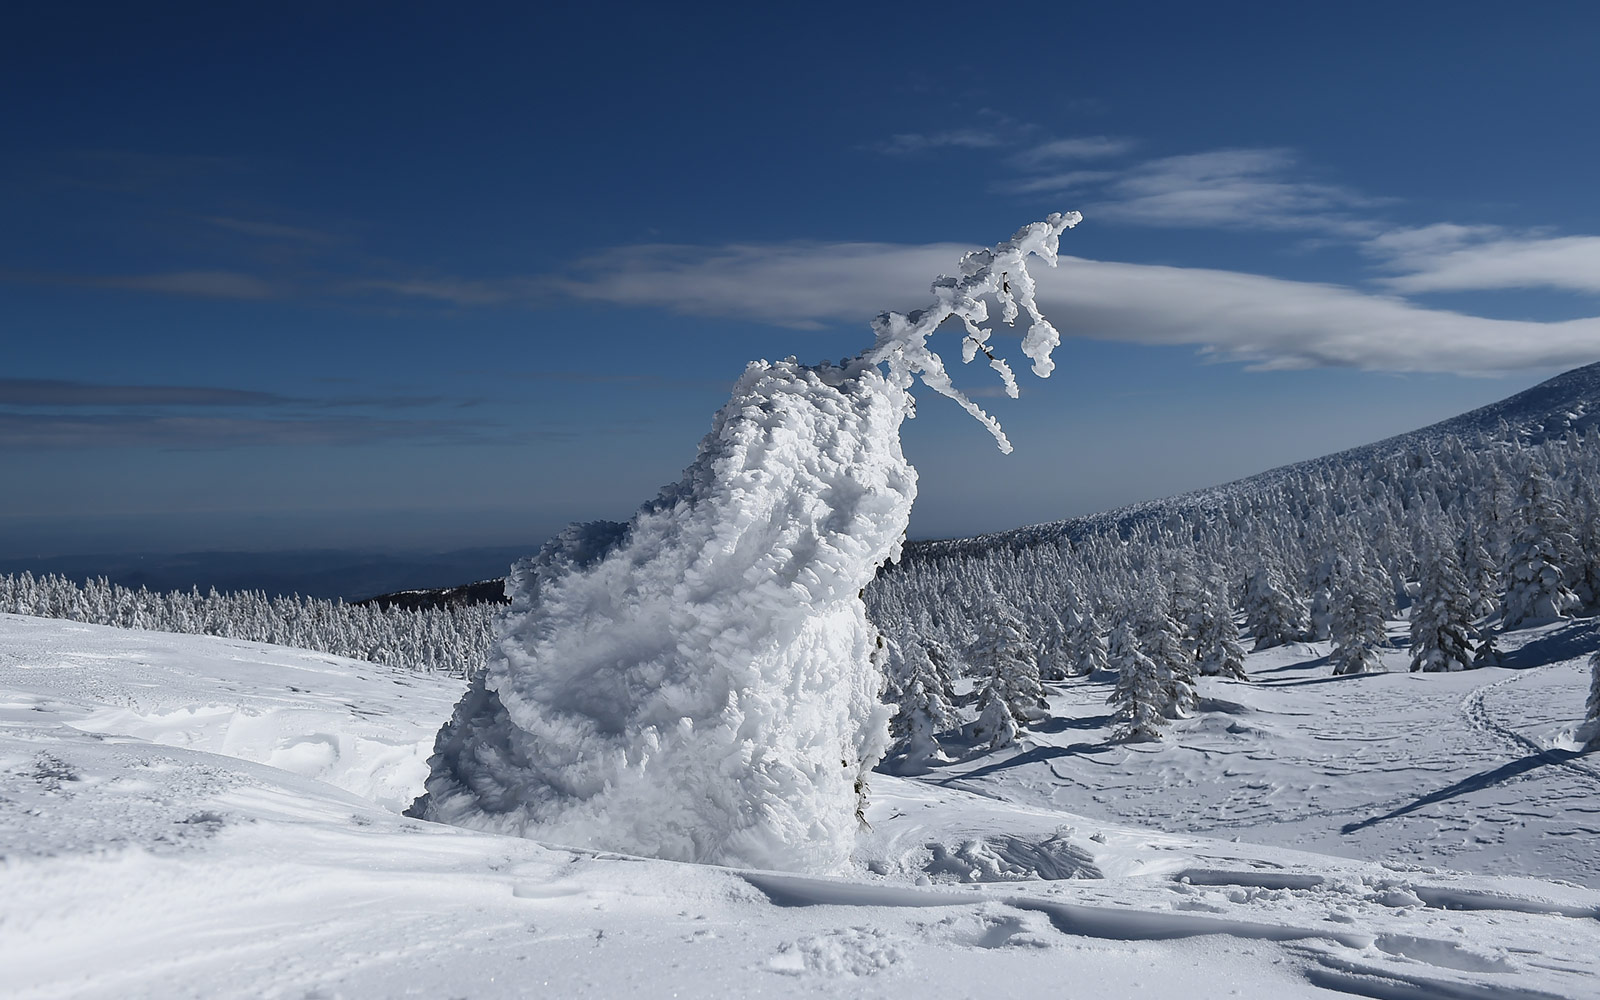 View of Snow Monster at Zao Ski Resort